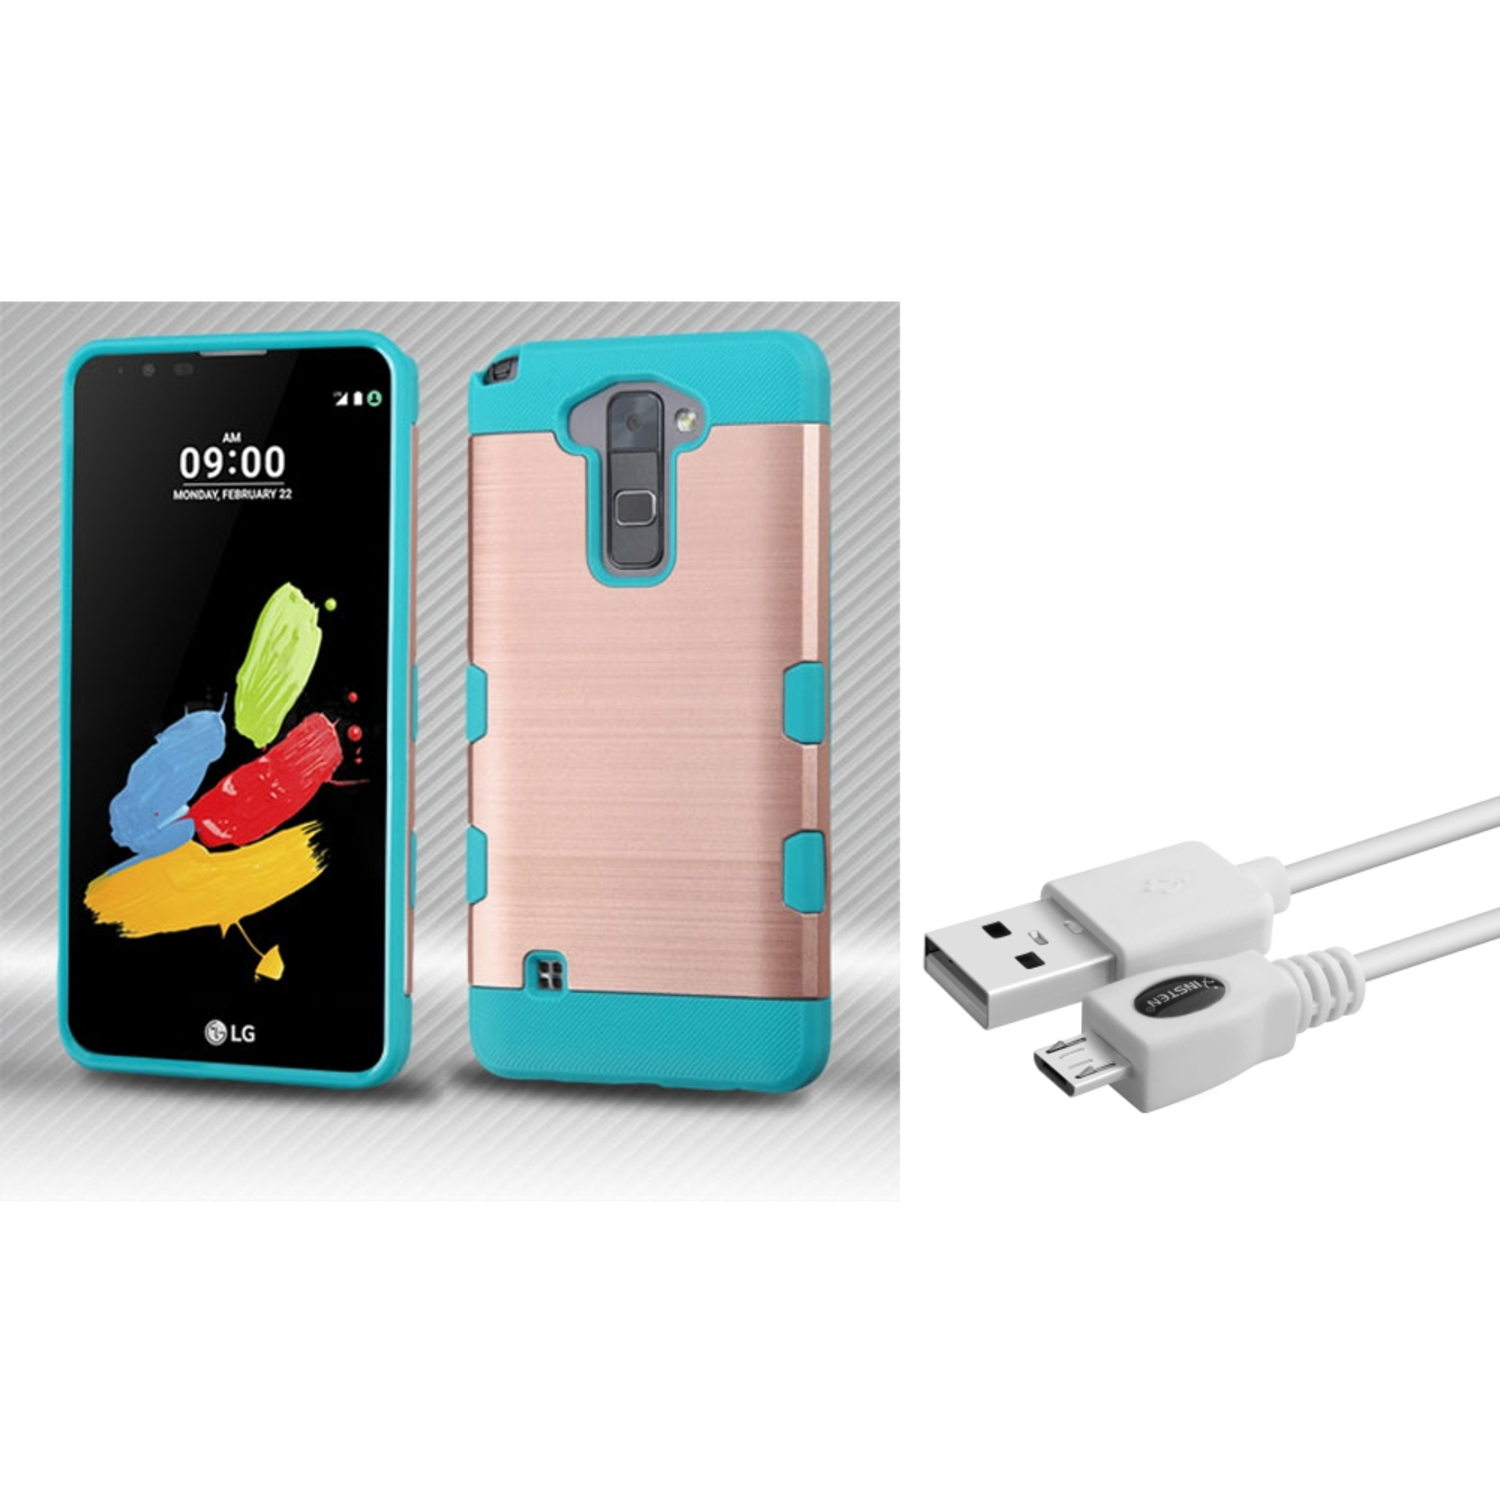 Insten Hard TPU Case For LG Stylus 2 - Rose Gold/Blue (+ Micro USB Charge Cable)